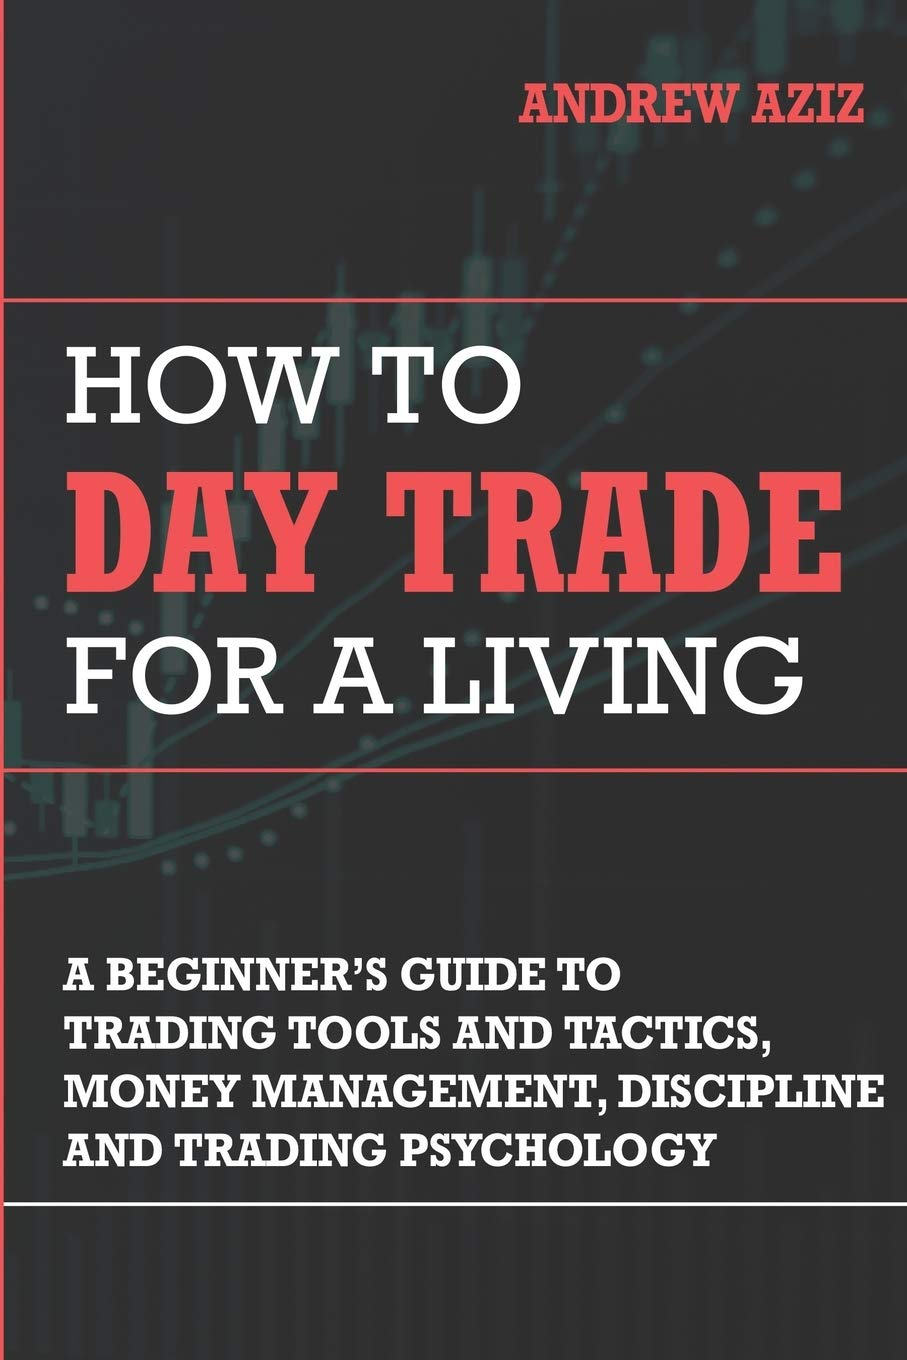 How to Day Trade for a Living: one of investing books